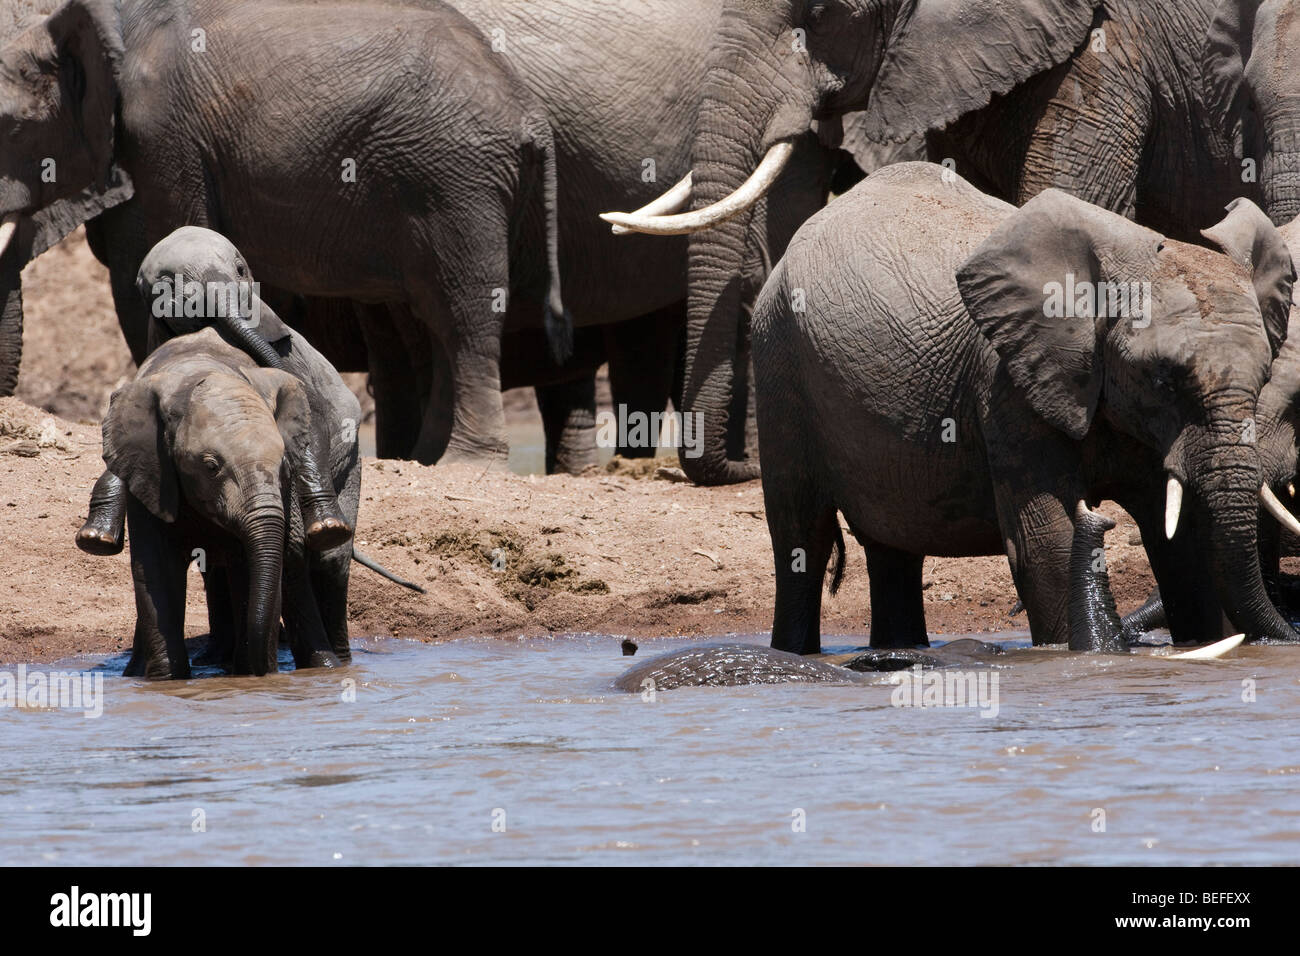 2 funny baby elephants play together in river with bathing adult, herd background, Masai Mara Kenya - Stock Image